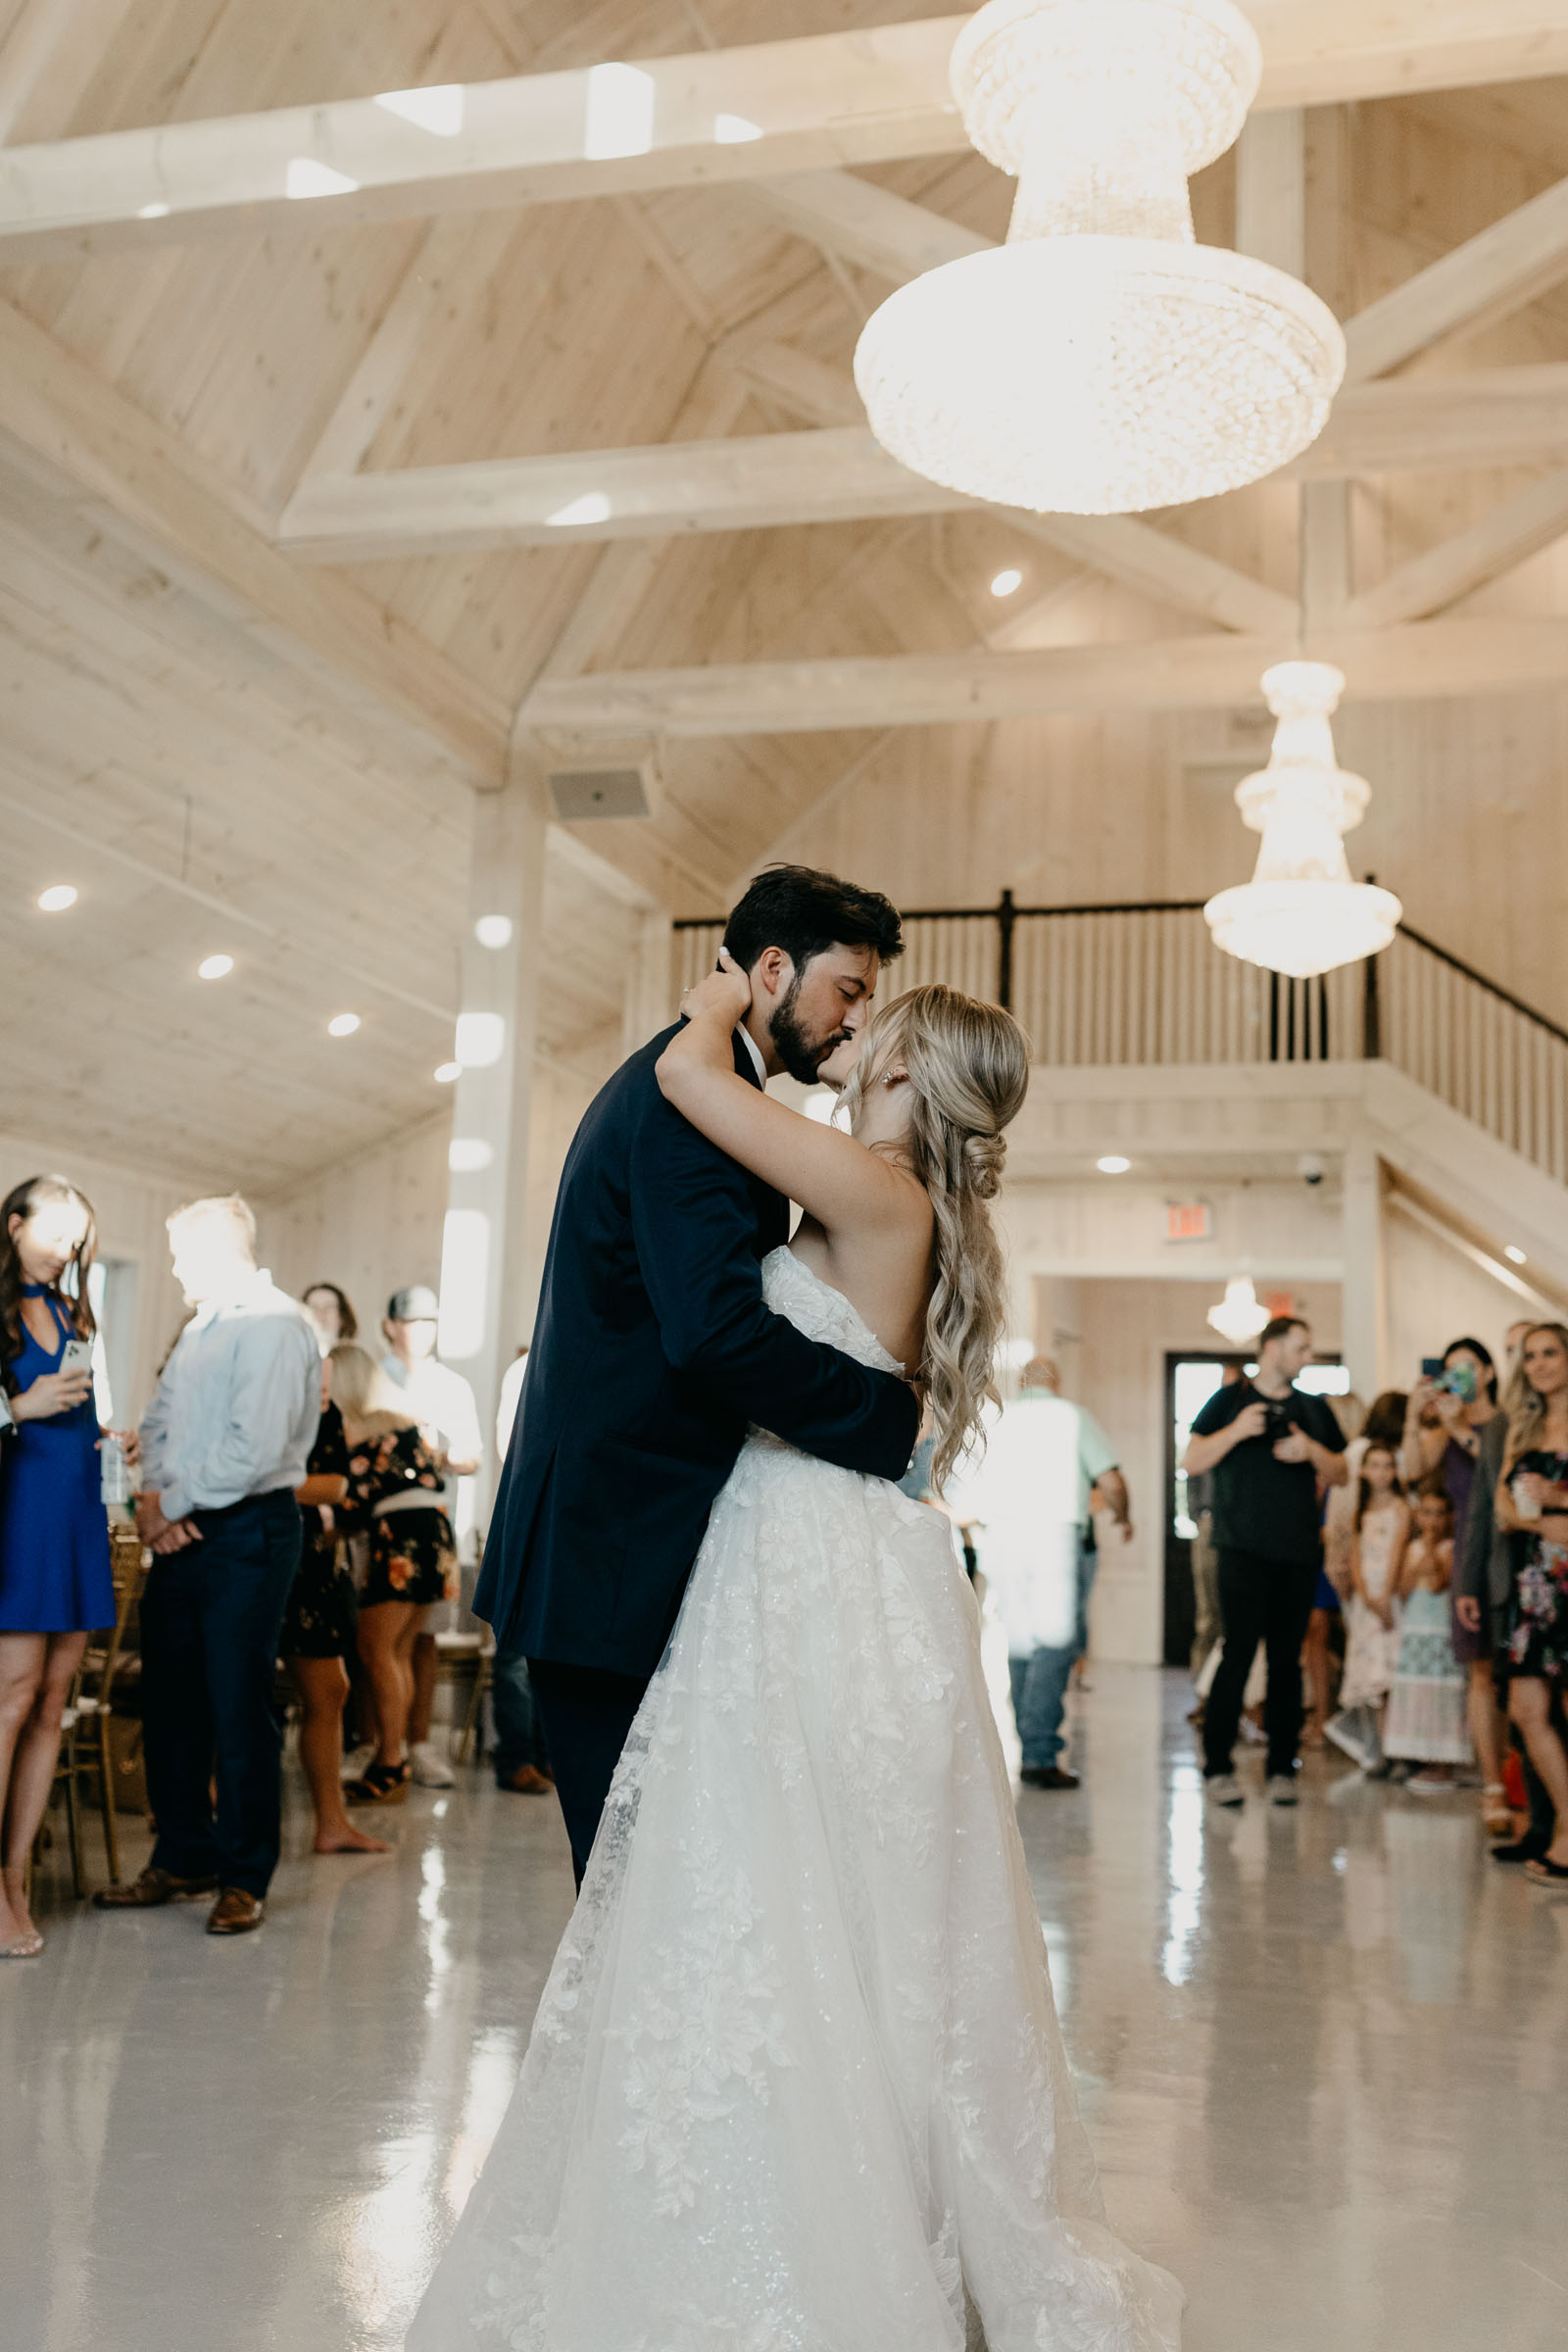 Bride and groom kissing at they share their first dance at one Preston events in DFW